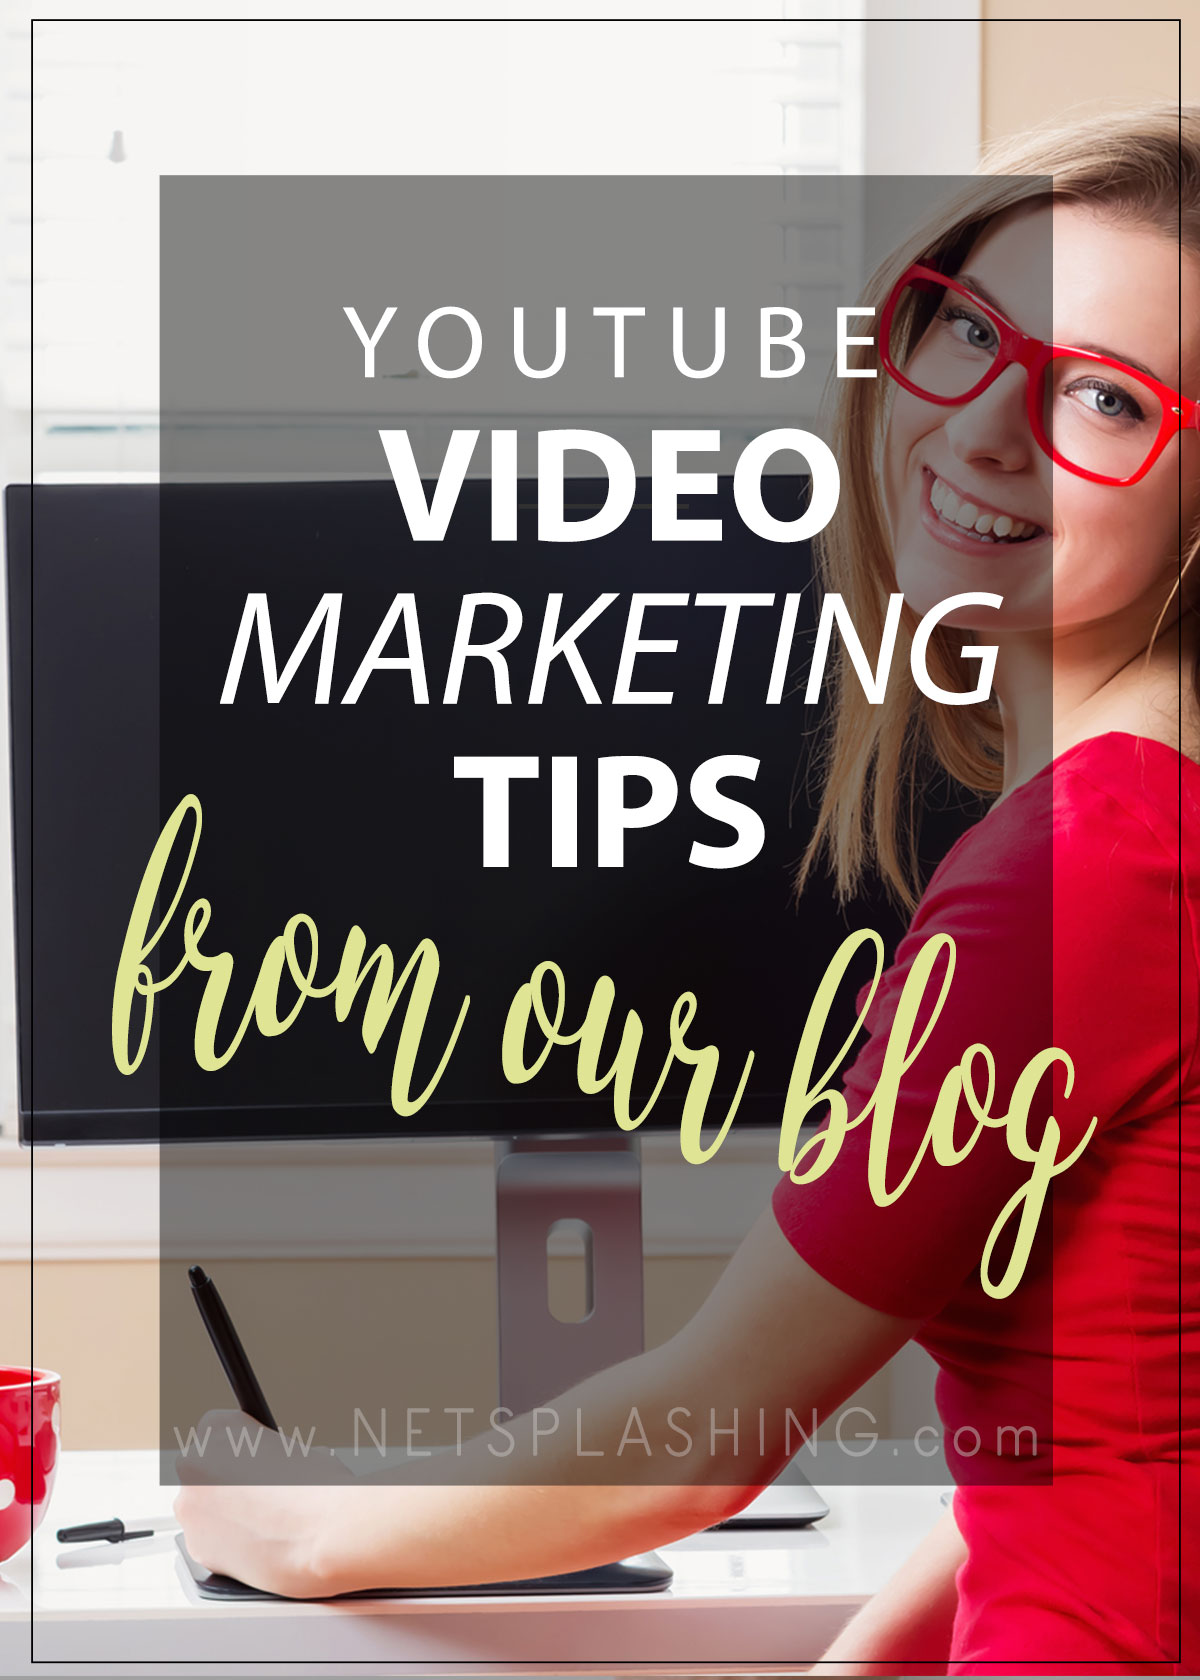 Video-Marketing-Strategies-from-the-netsplashing-blog